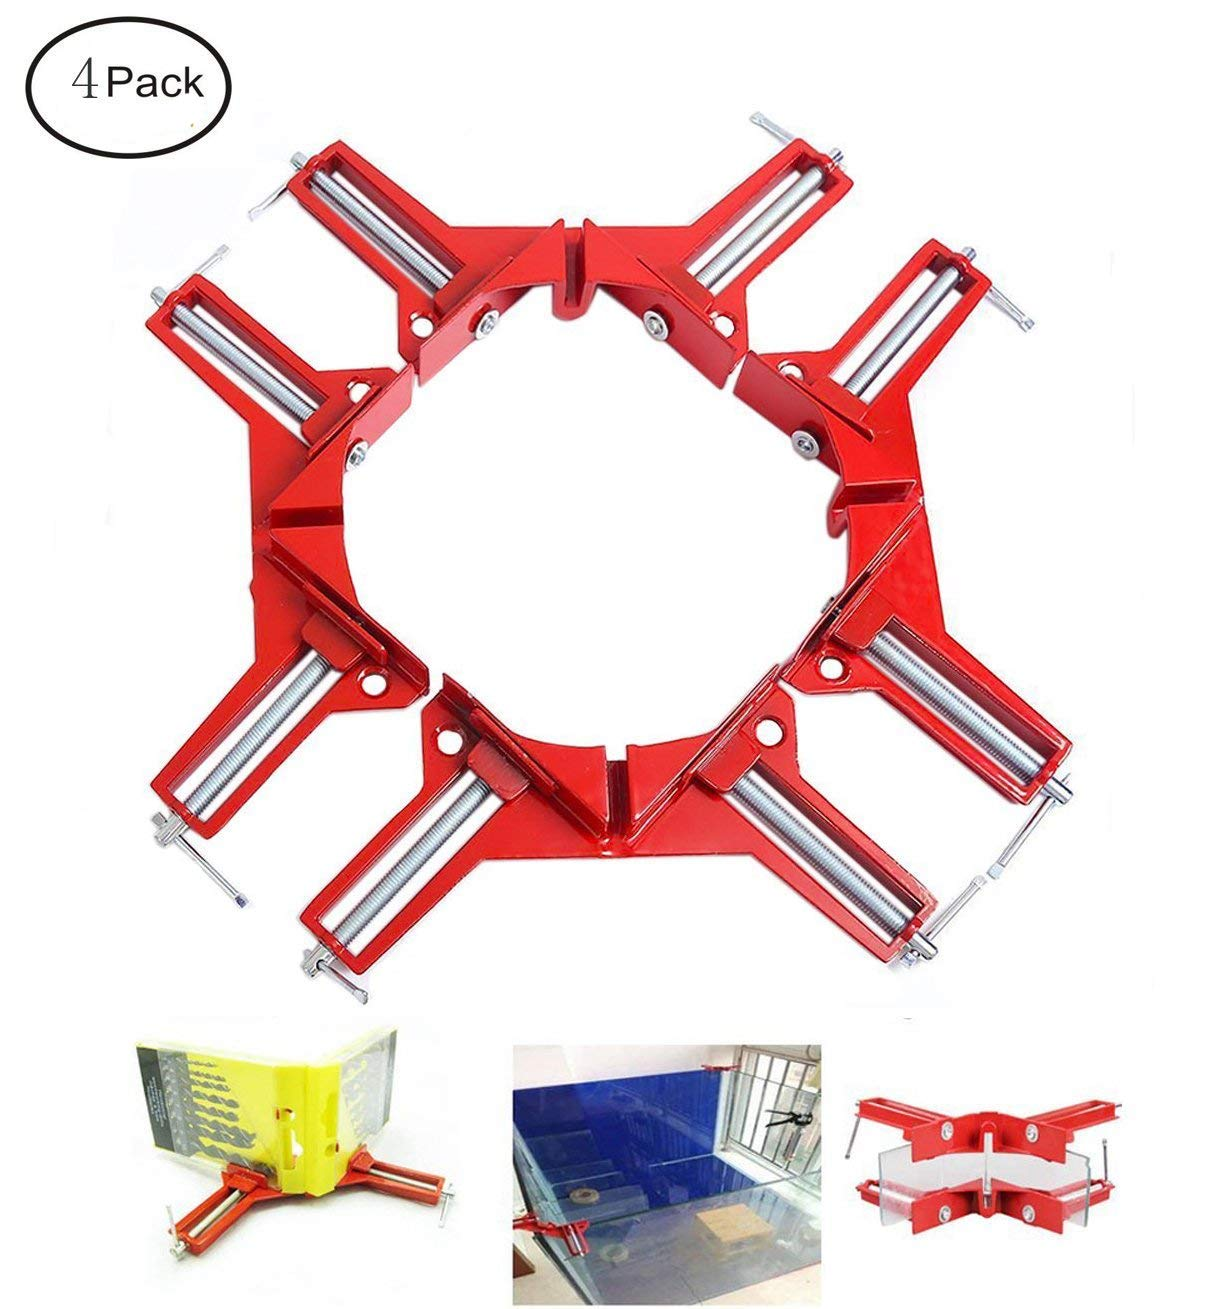 Fashionclubs 4pcs/set Right Angle Clamp,Aluminum 90-Degree Angle Miter Corner Clamp For Picture Frame,Cabinet,Woodworking Hand Jig Tool Kit